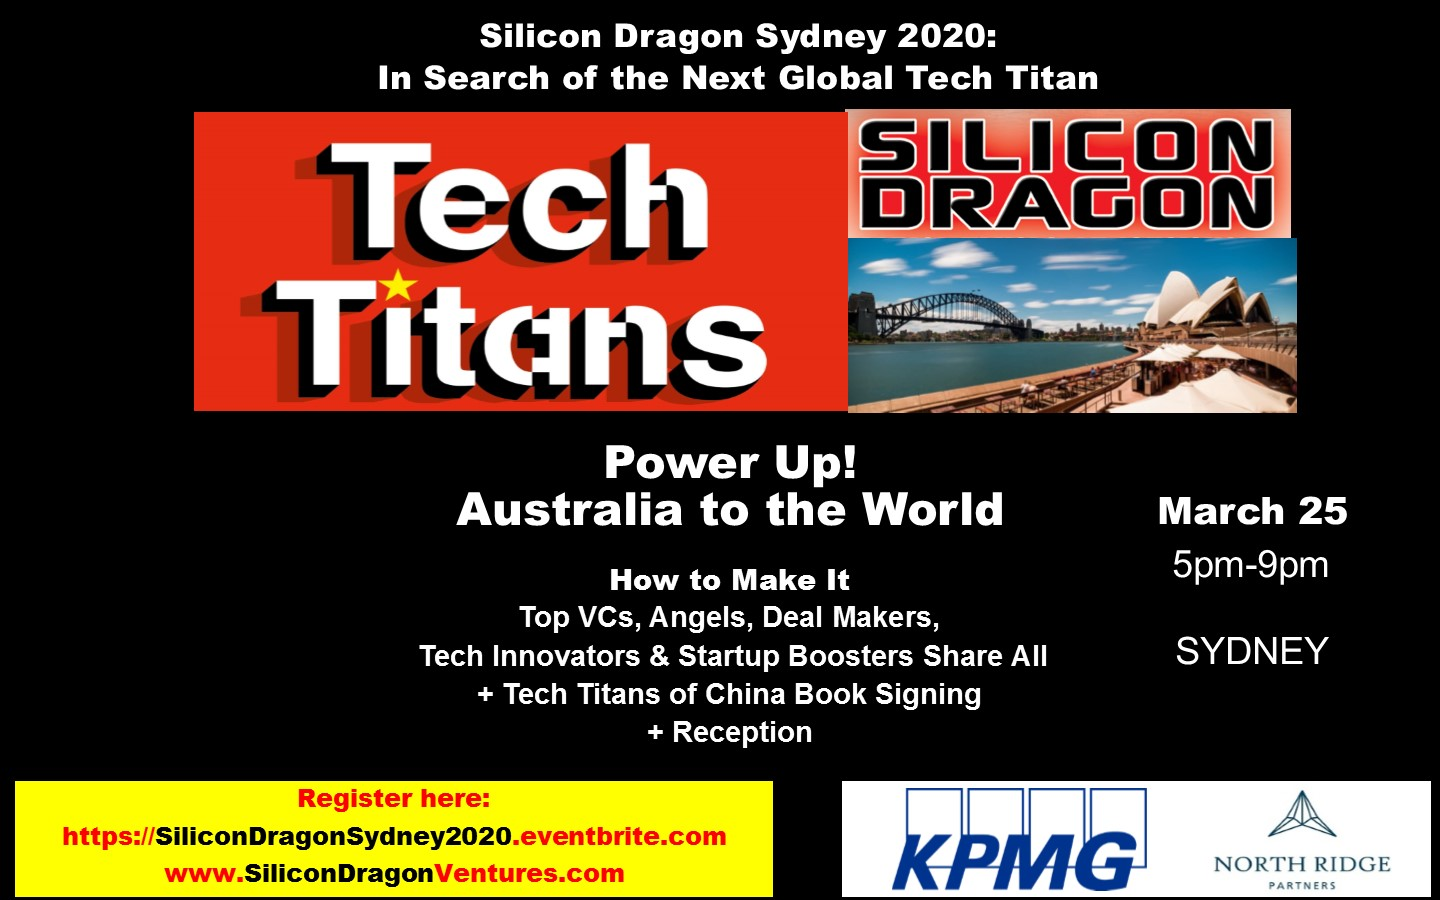 Silicon Dragon Sydney 2020 @ International Towers Sydney